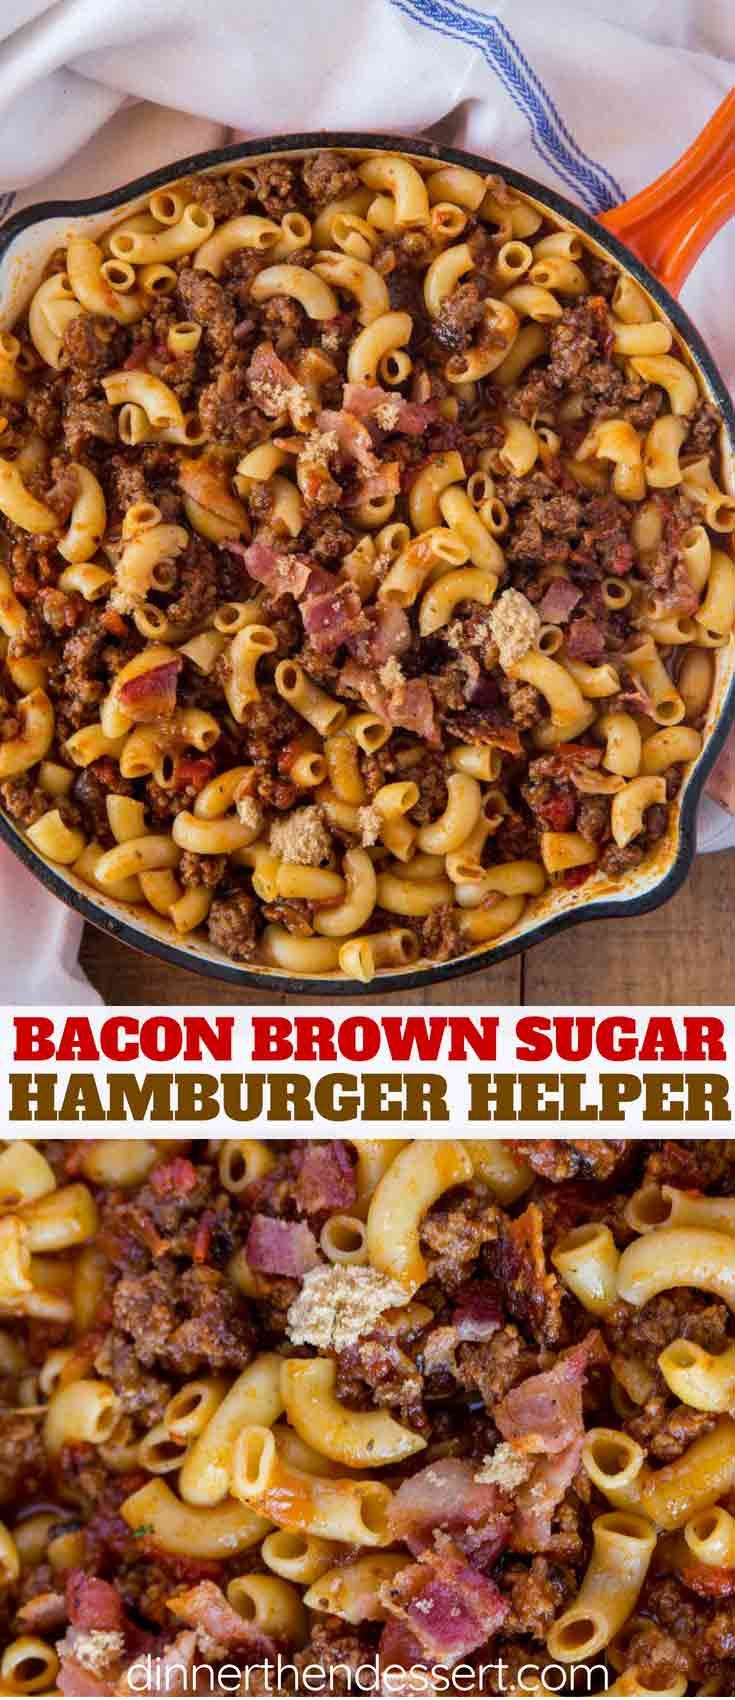 Bacon Brown Sugar Hamburger Helper with a crispy, beefy, bacon filled pasta dish your kids will lov